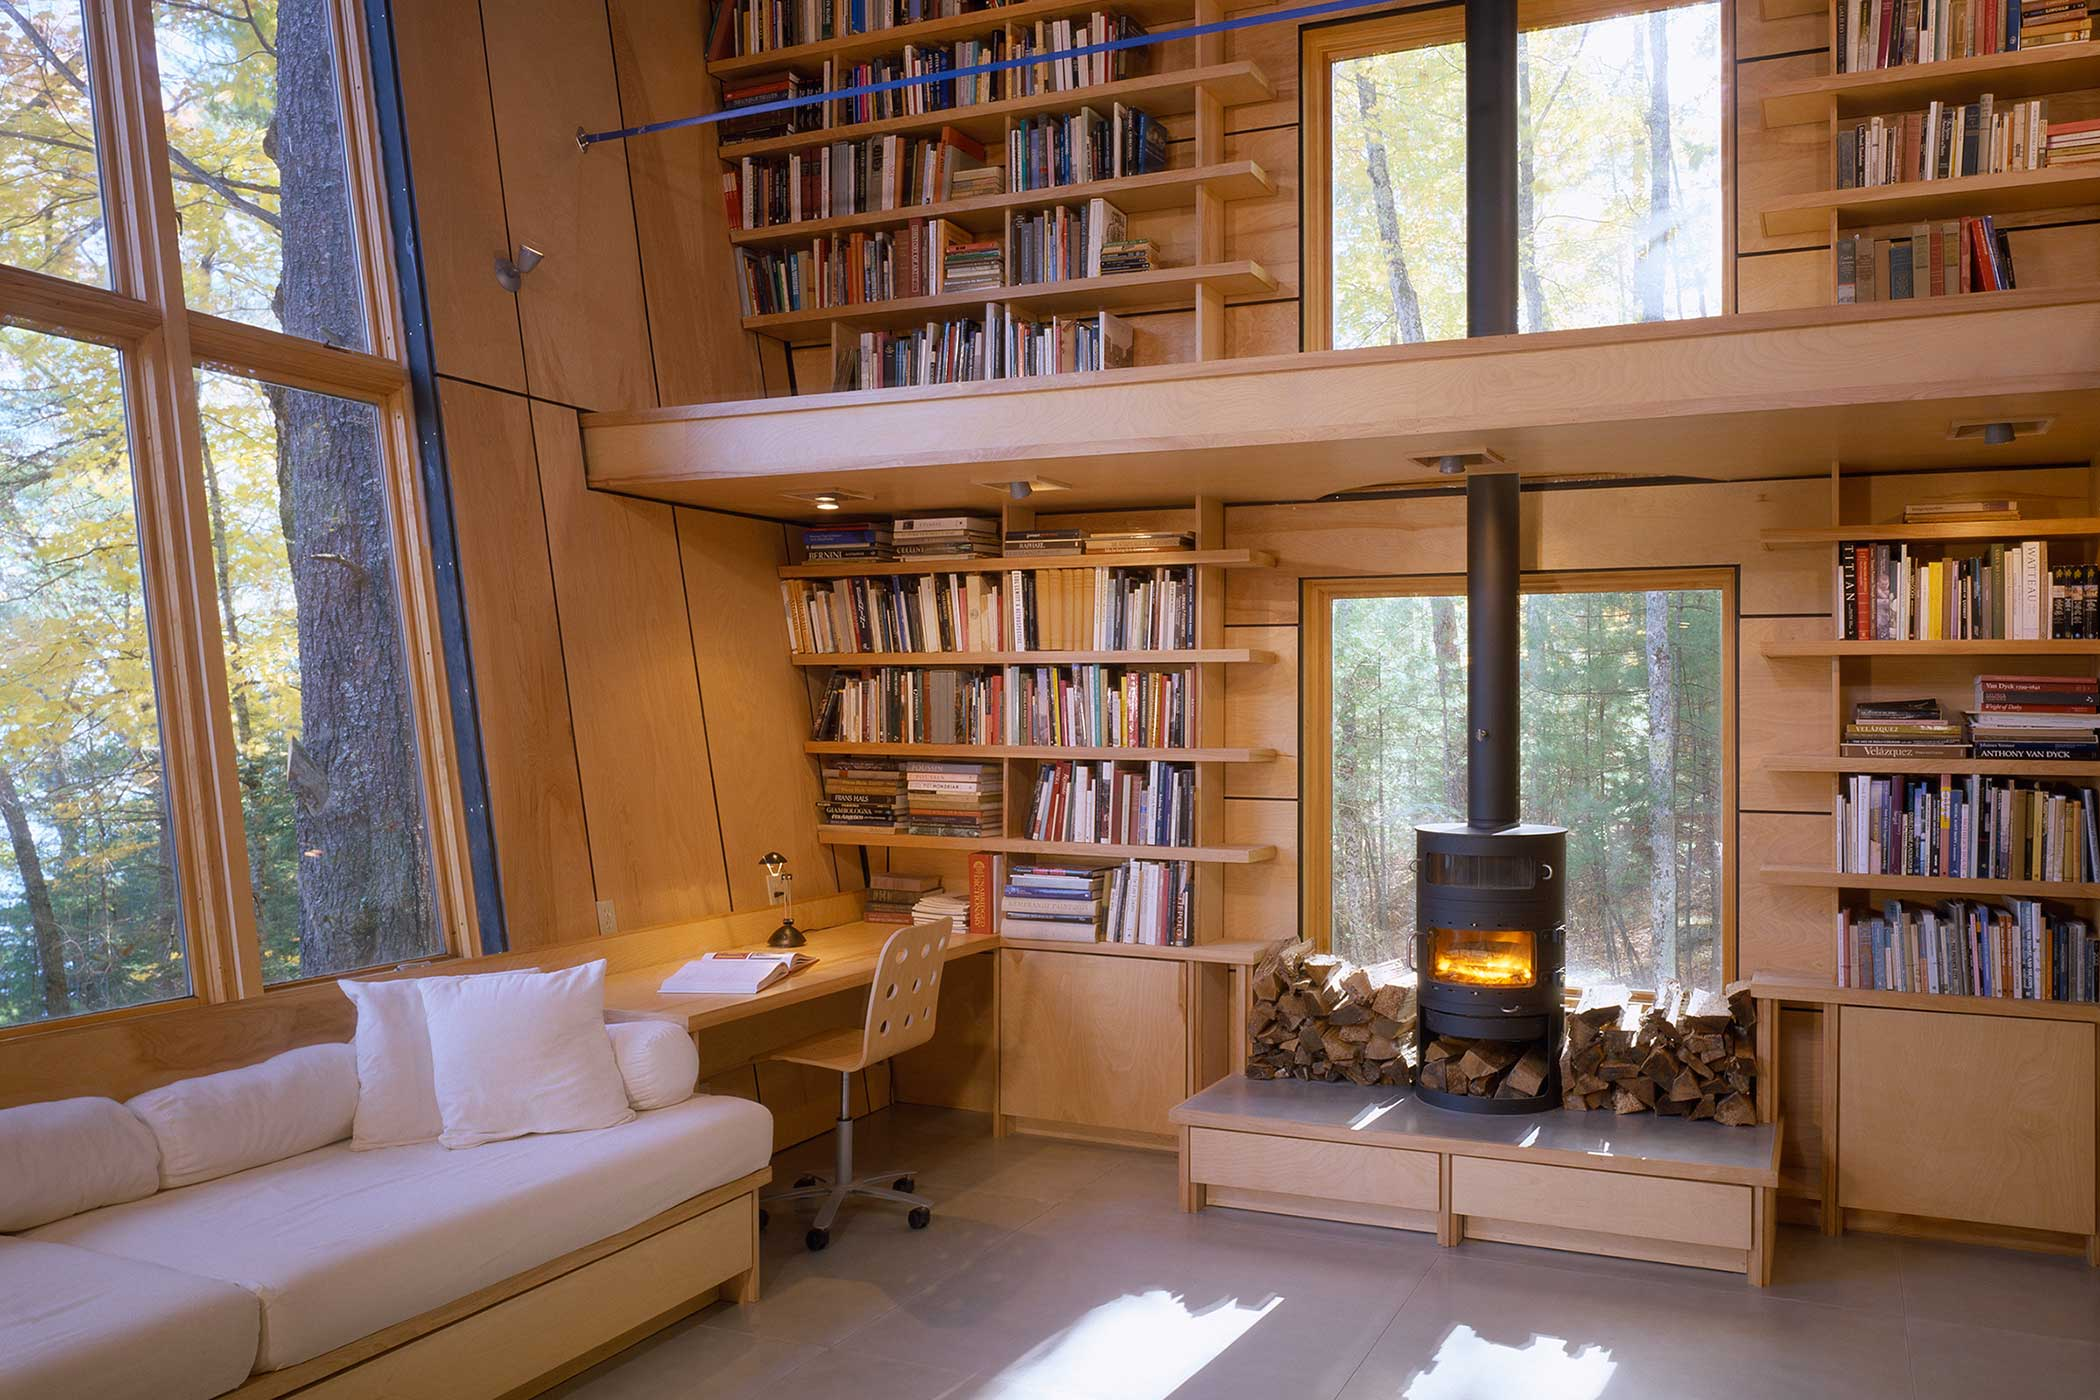 'Lake House - Library' by Christopher Campbell Architecture